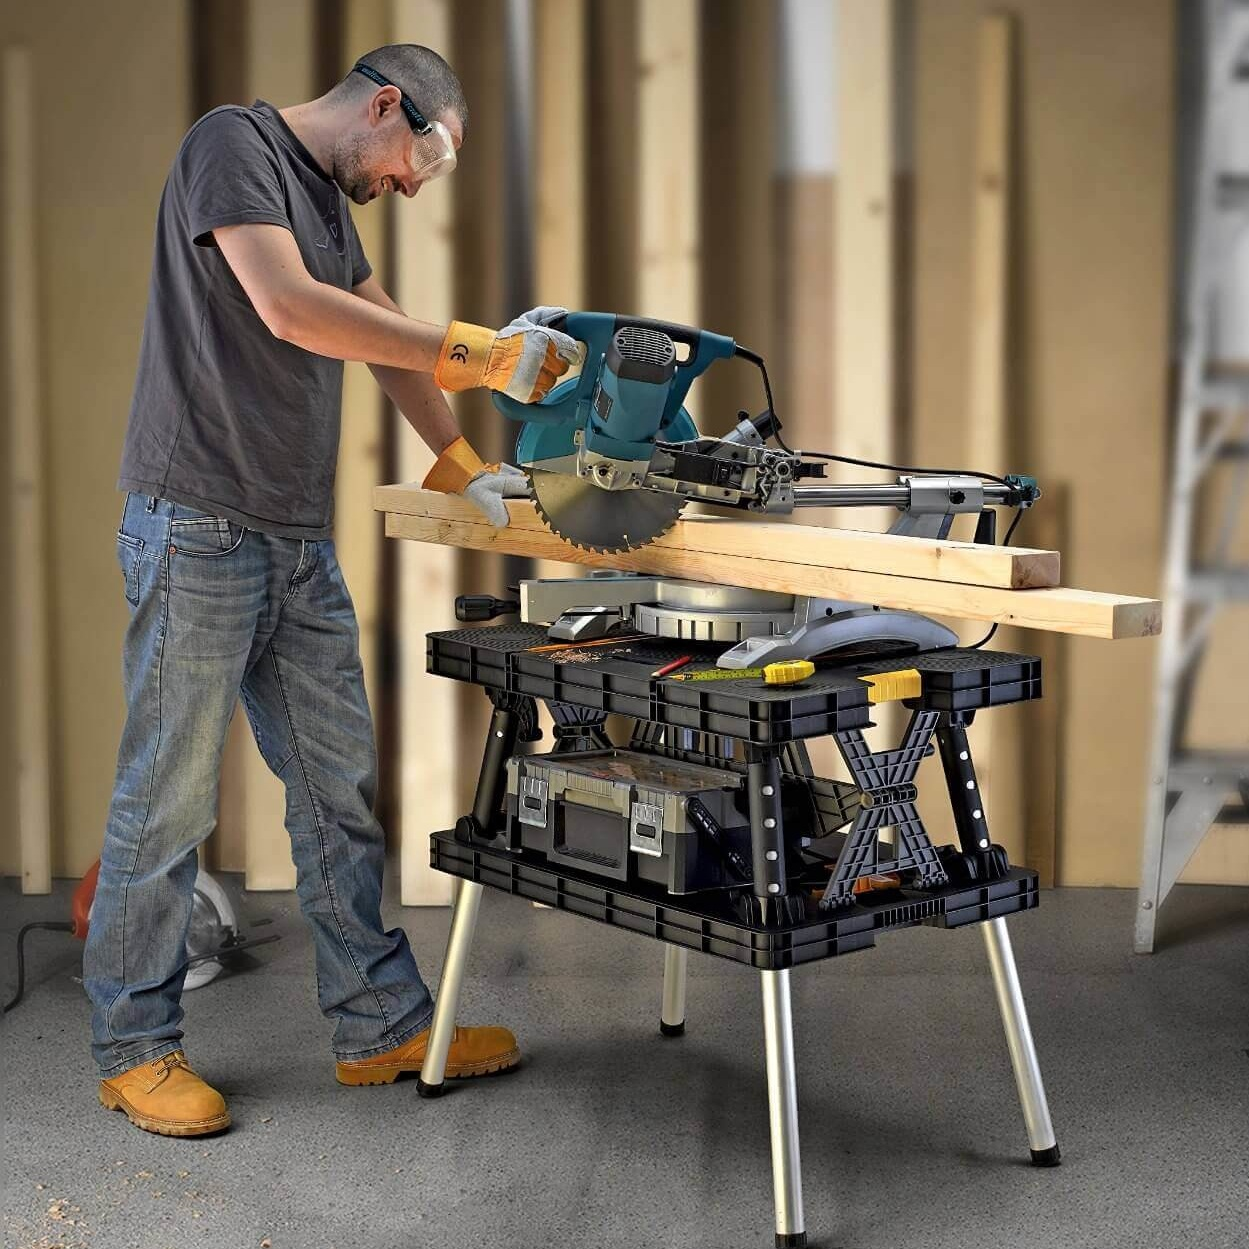 7 Best Folding Work Table Review 2020